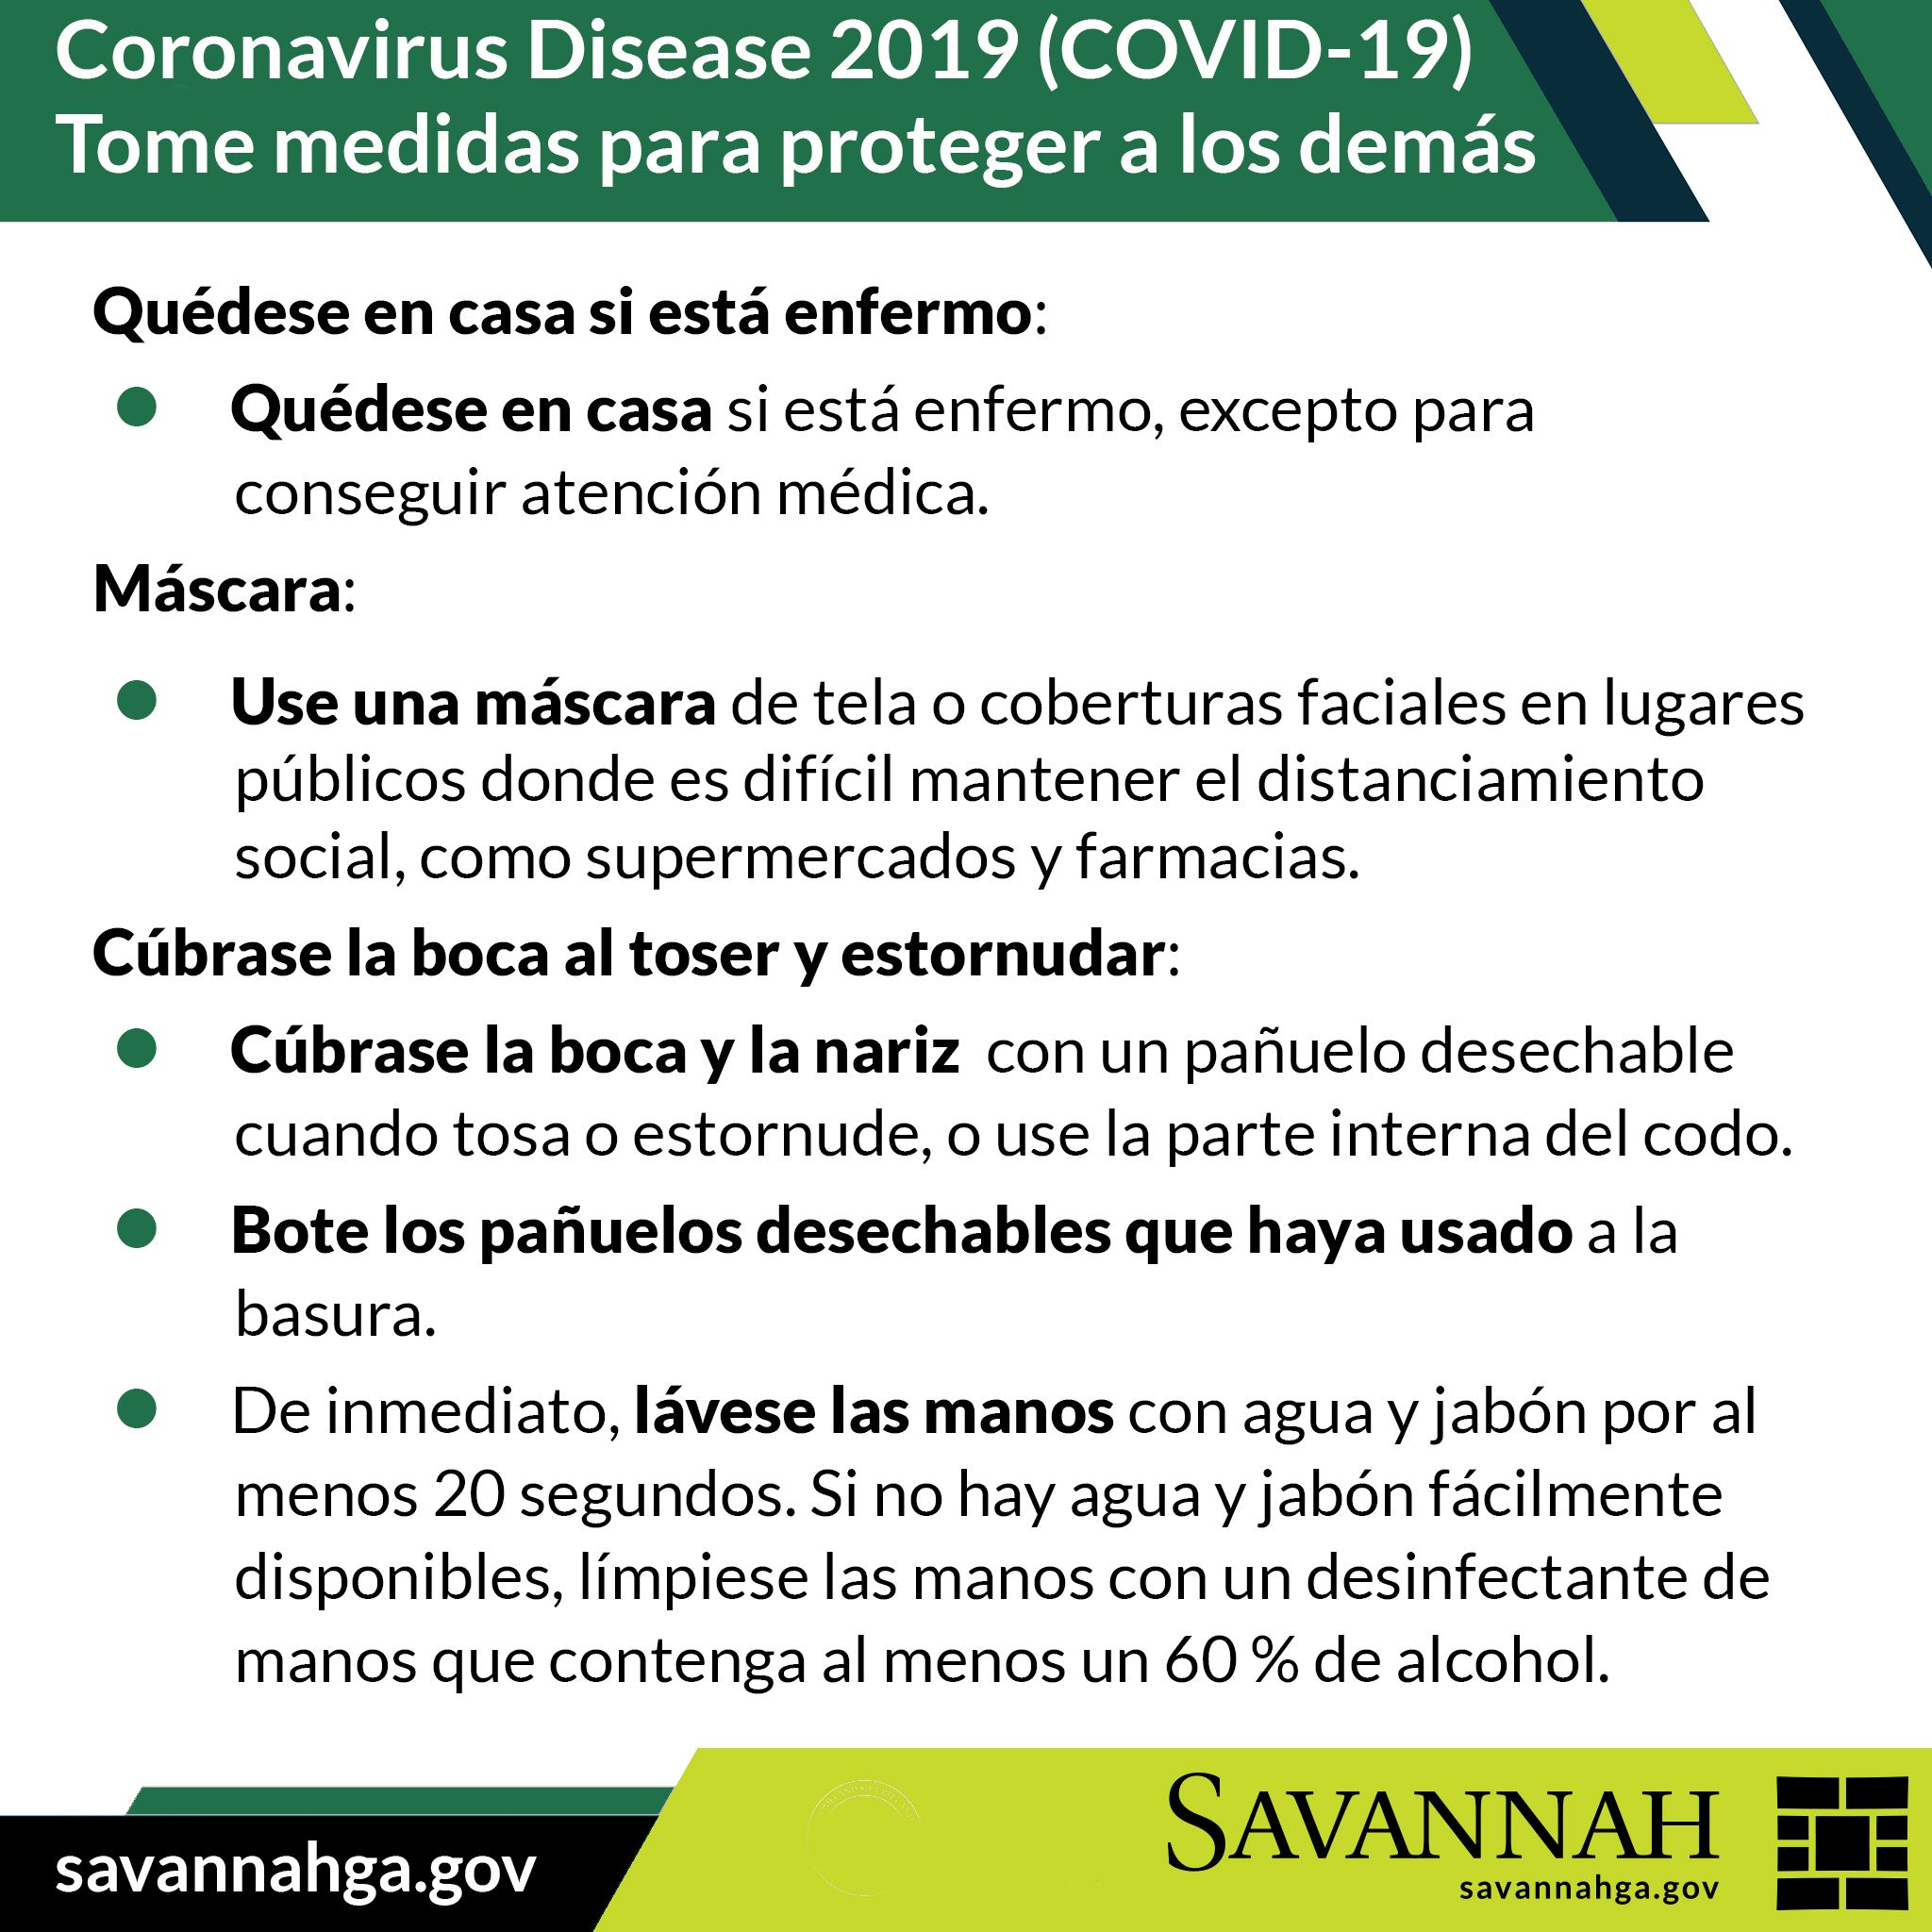 TAke Steps to Protect Others-Stay Home and Cover Coughs SPANISH 04062020 REDO with mask info Opens in new window